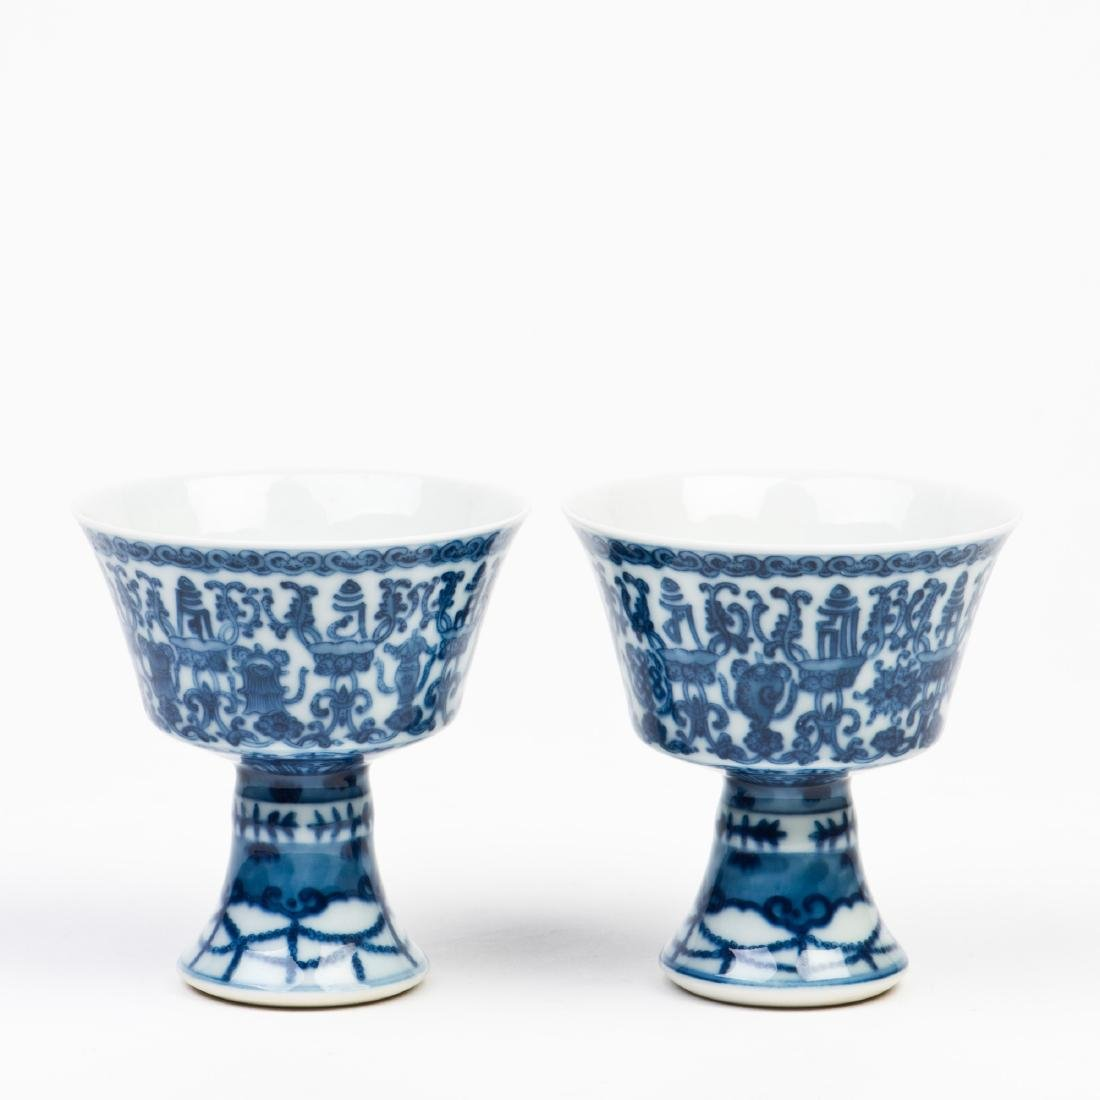 A PAIR OF PORCELAIN GOBLETS